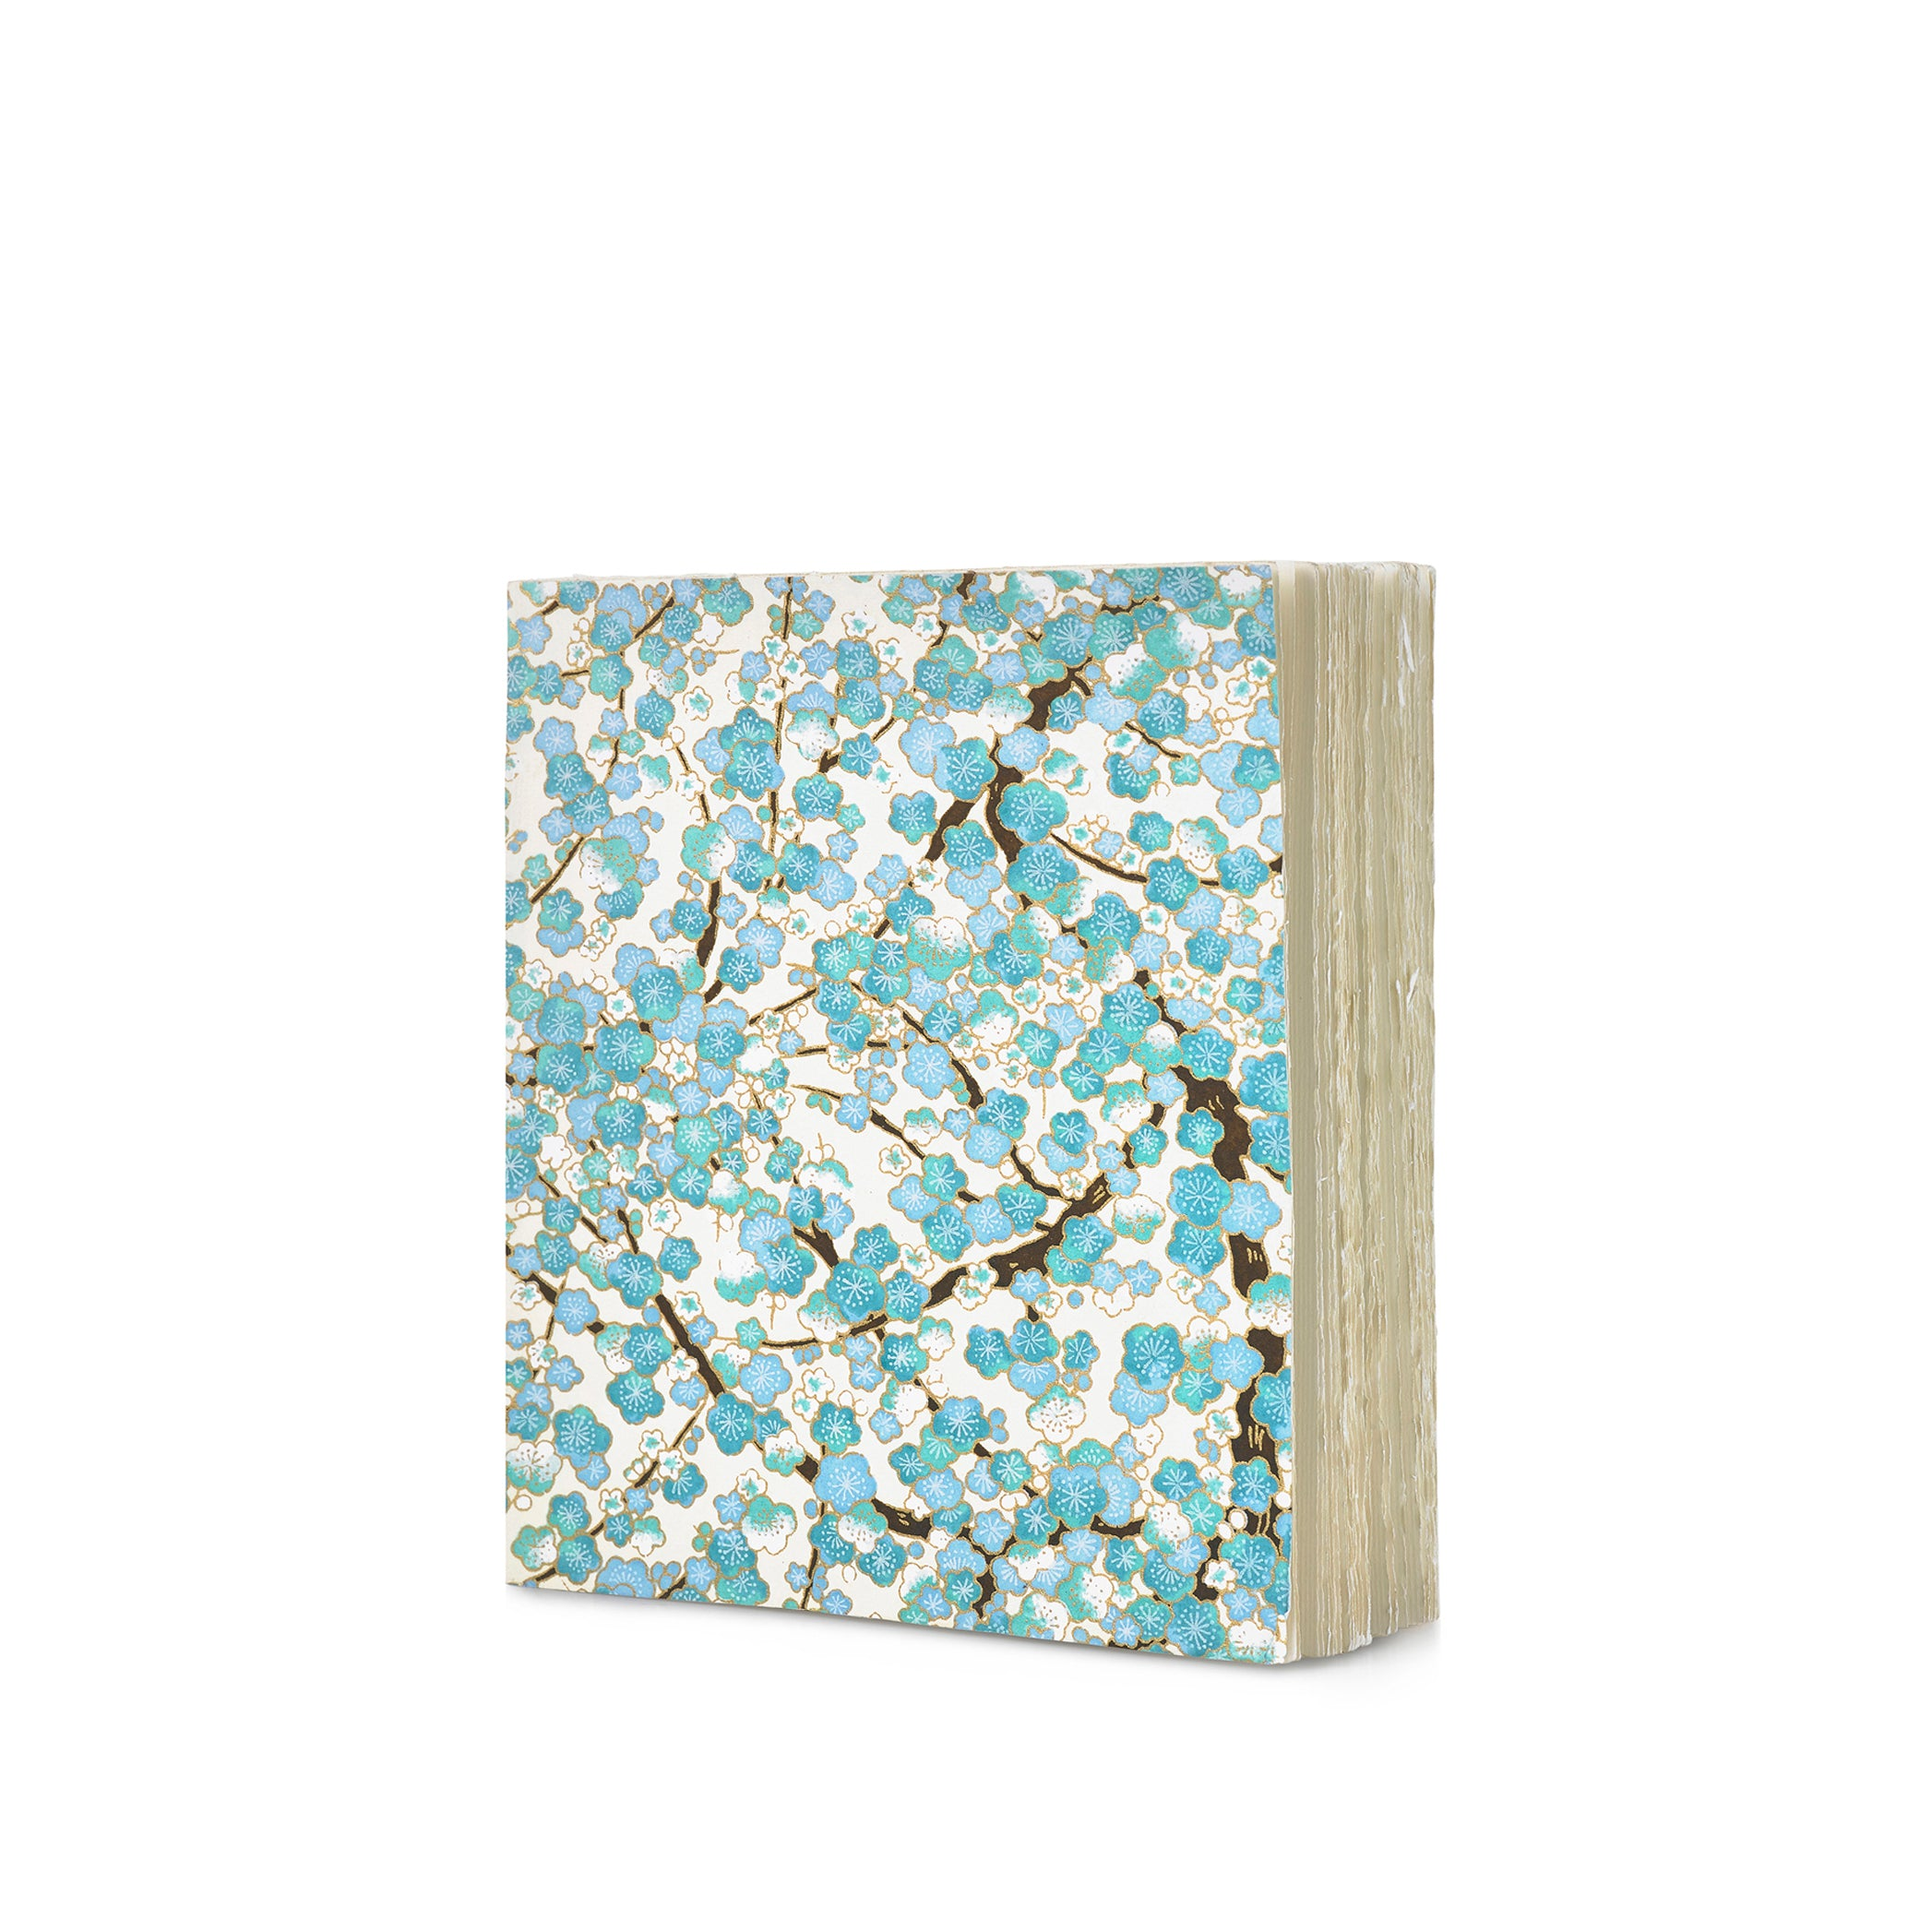 Handprinted Japanese Chiyogami Covered Sketchbook, Apple Blossom